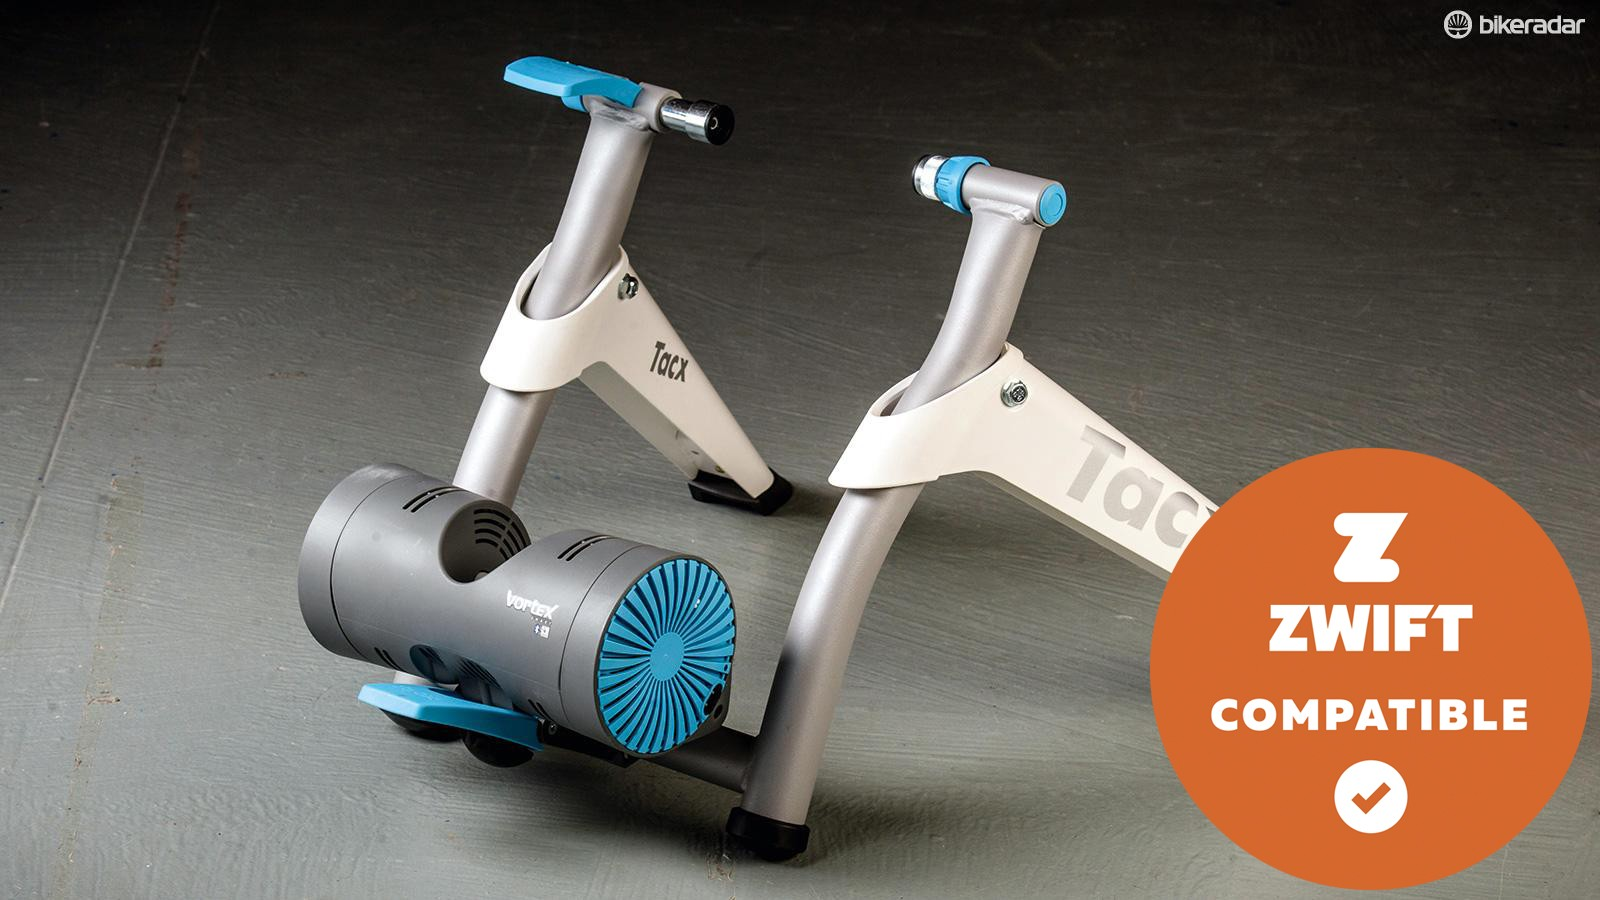 The Tacx Vortex Smart features easy connectivity and user-friendly apps